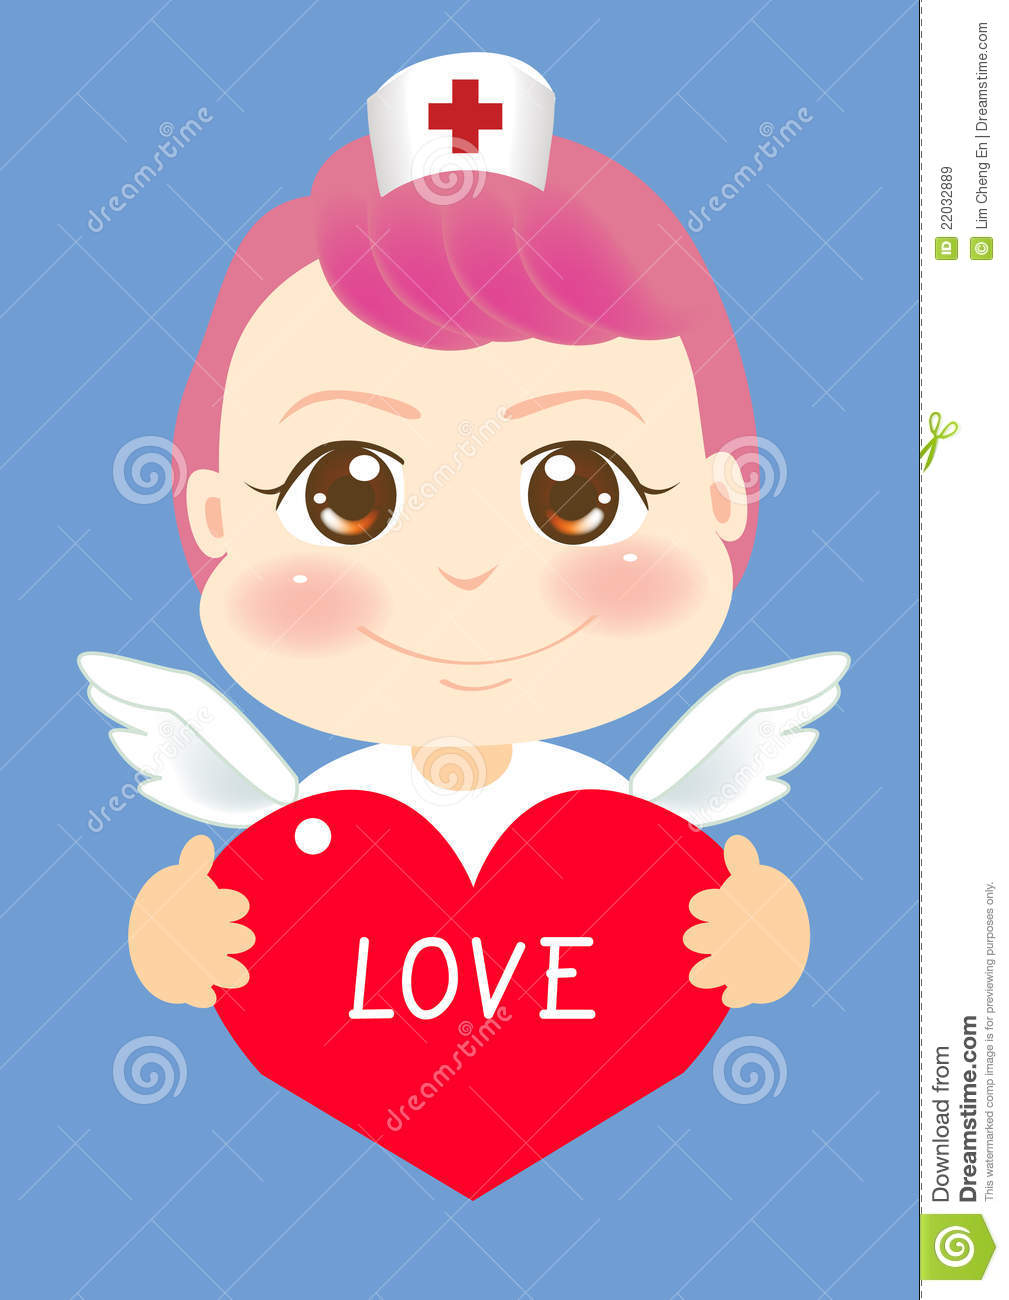 Angel Nurse Holding A Red Heart Shape With The Words Love